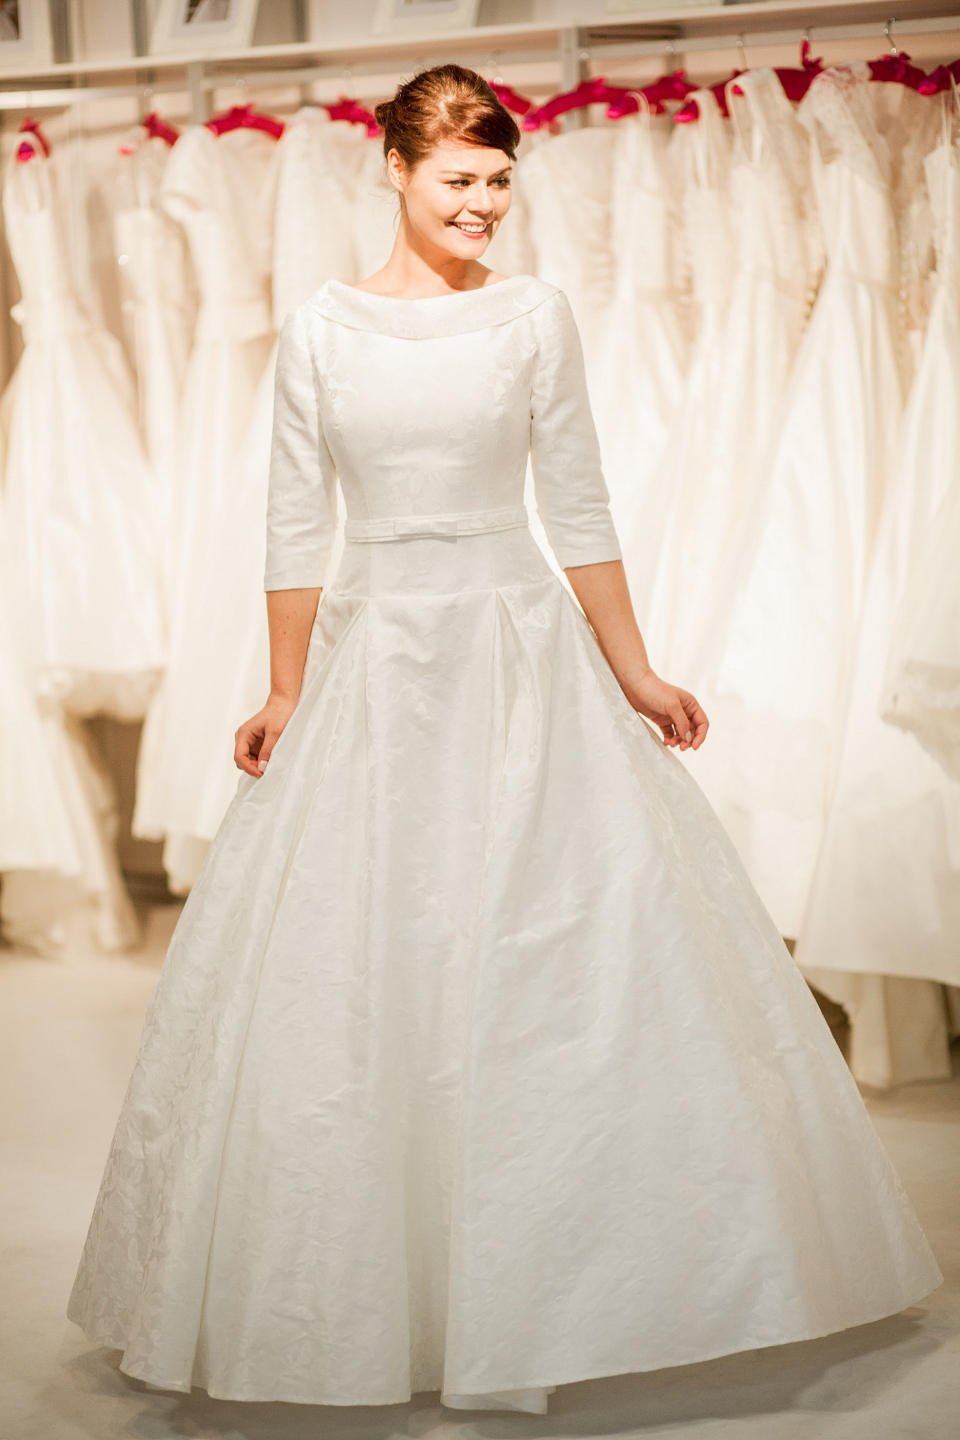 Blue Bridalwear wedding dresses at The White Gallery, London, April 2014